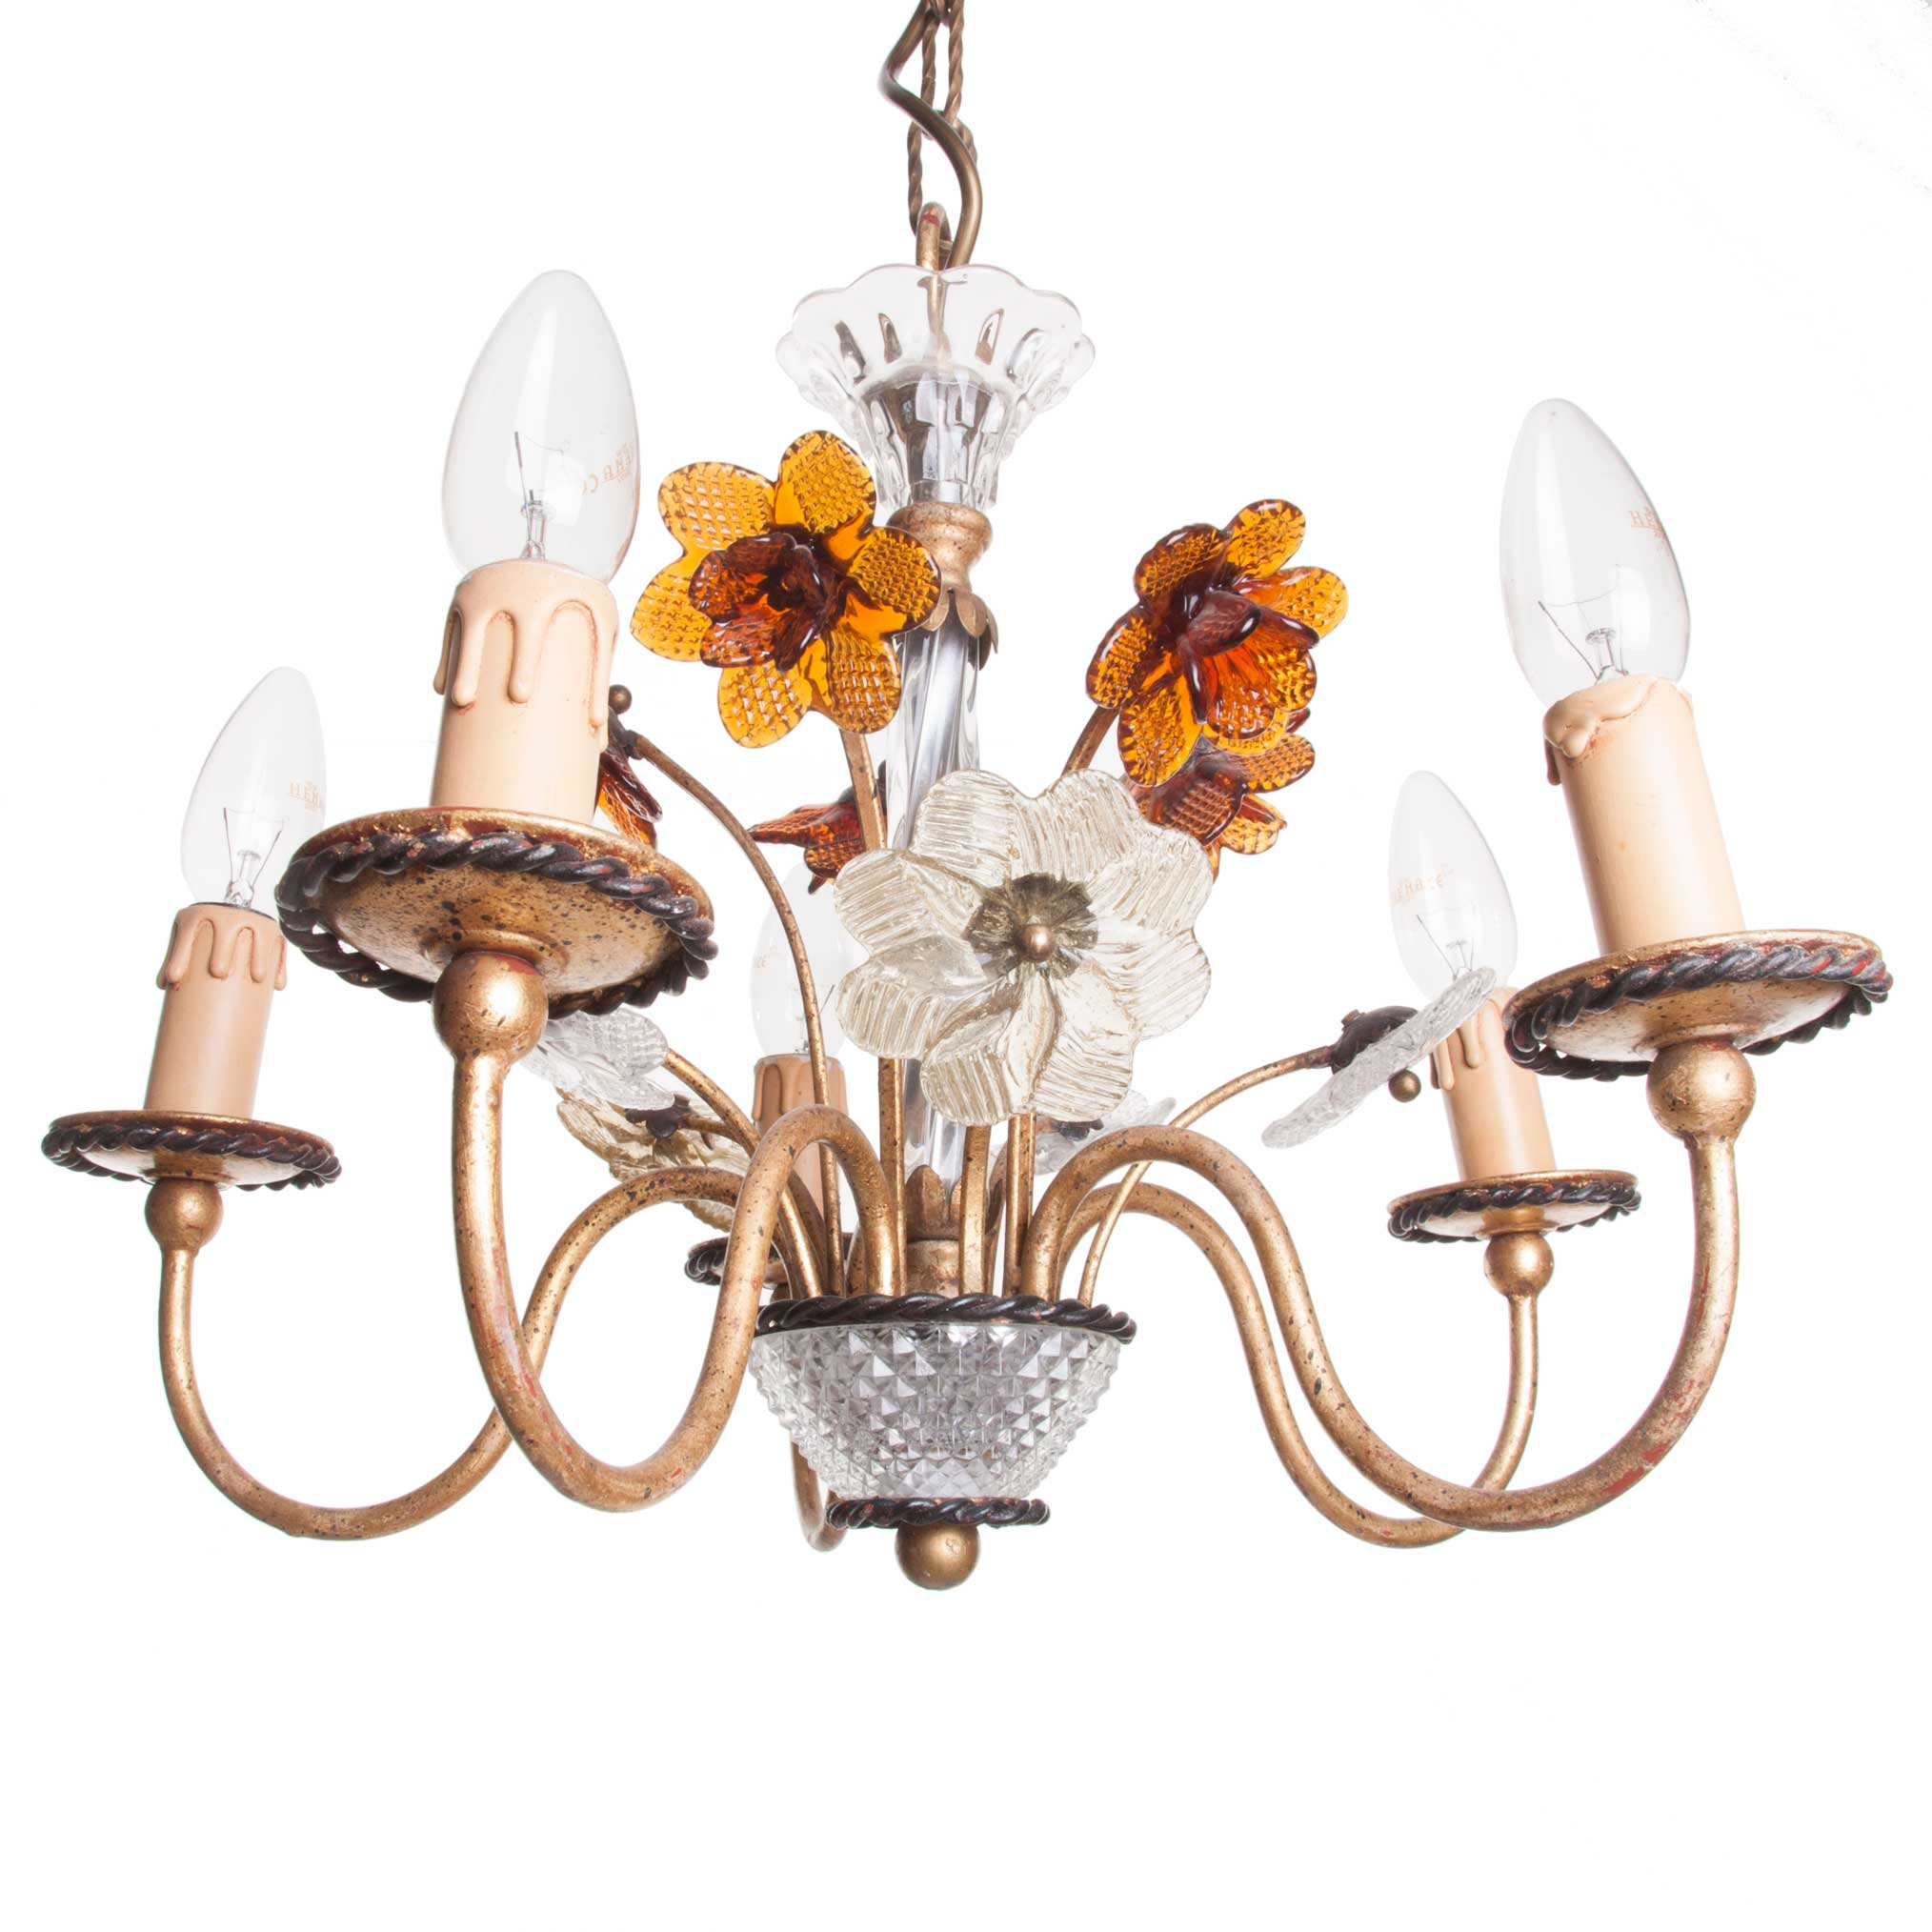 1940's Gold Plated Brass, Crystal And Molded Glass 5 Light Chandelier In Berger 5 Light Candle Style Chandeliers (View 24 of 30)